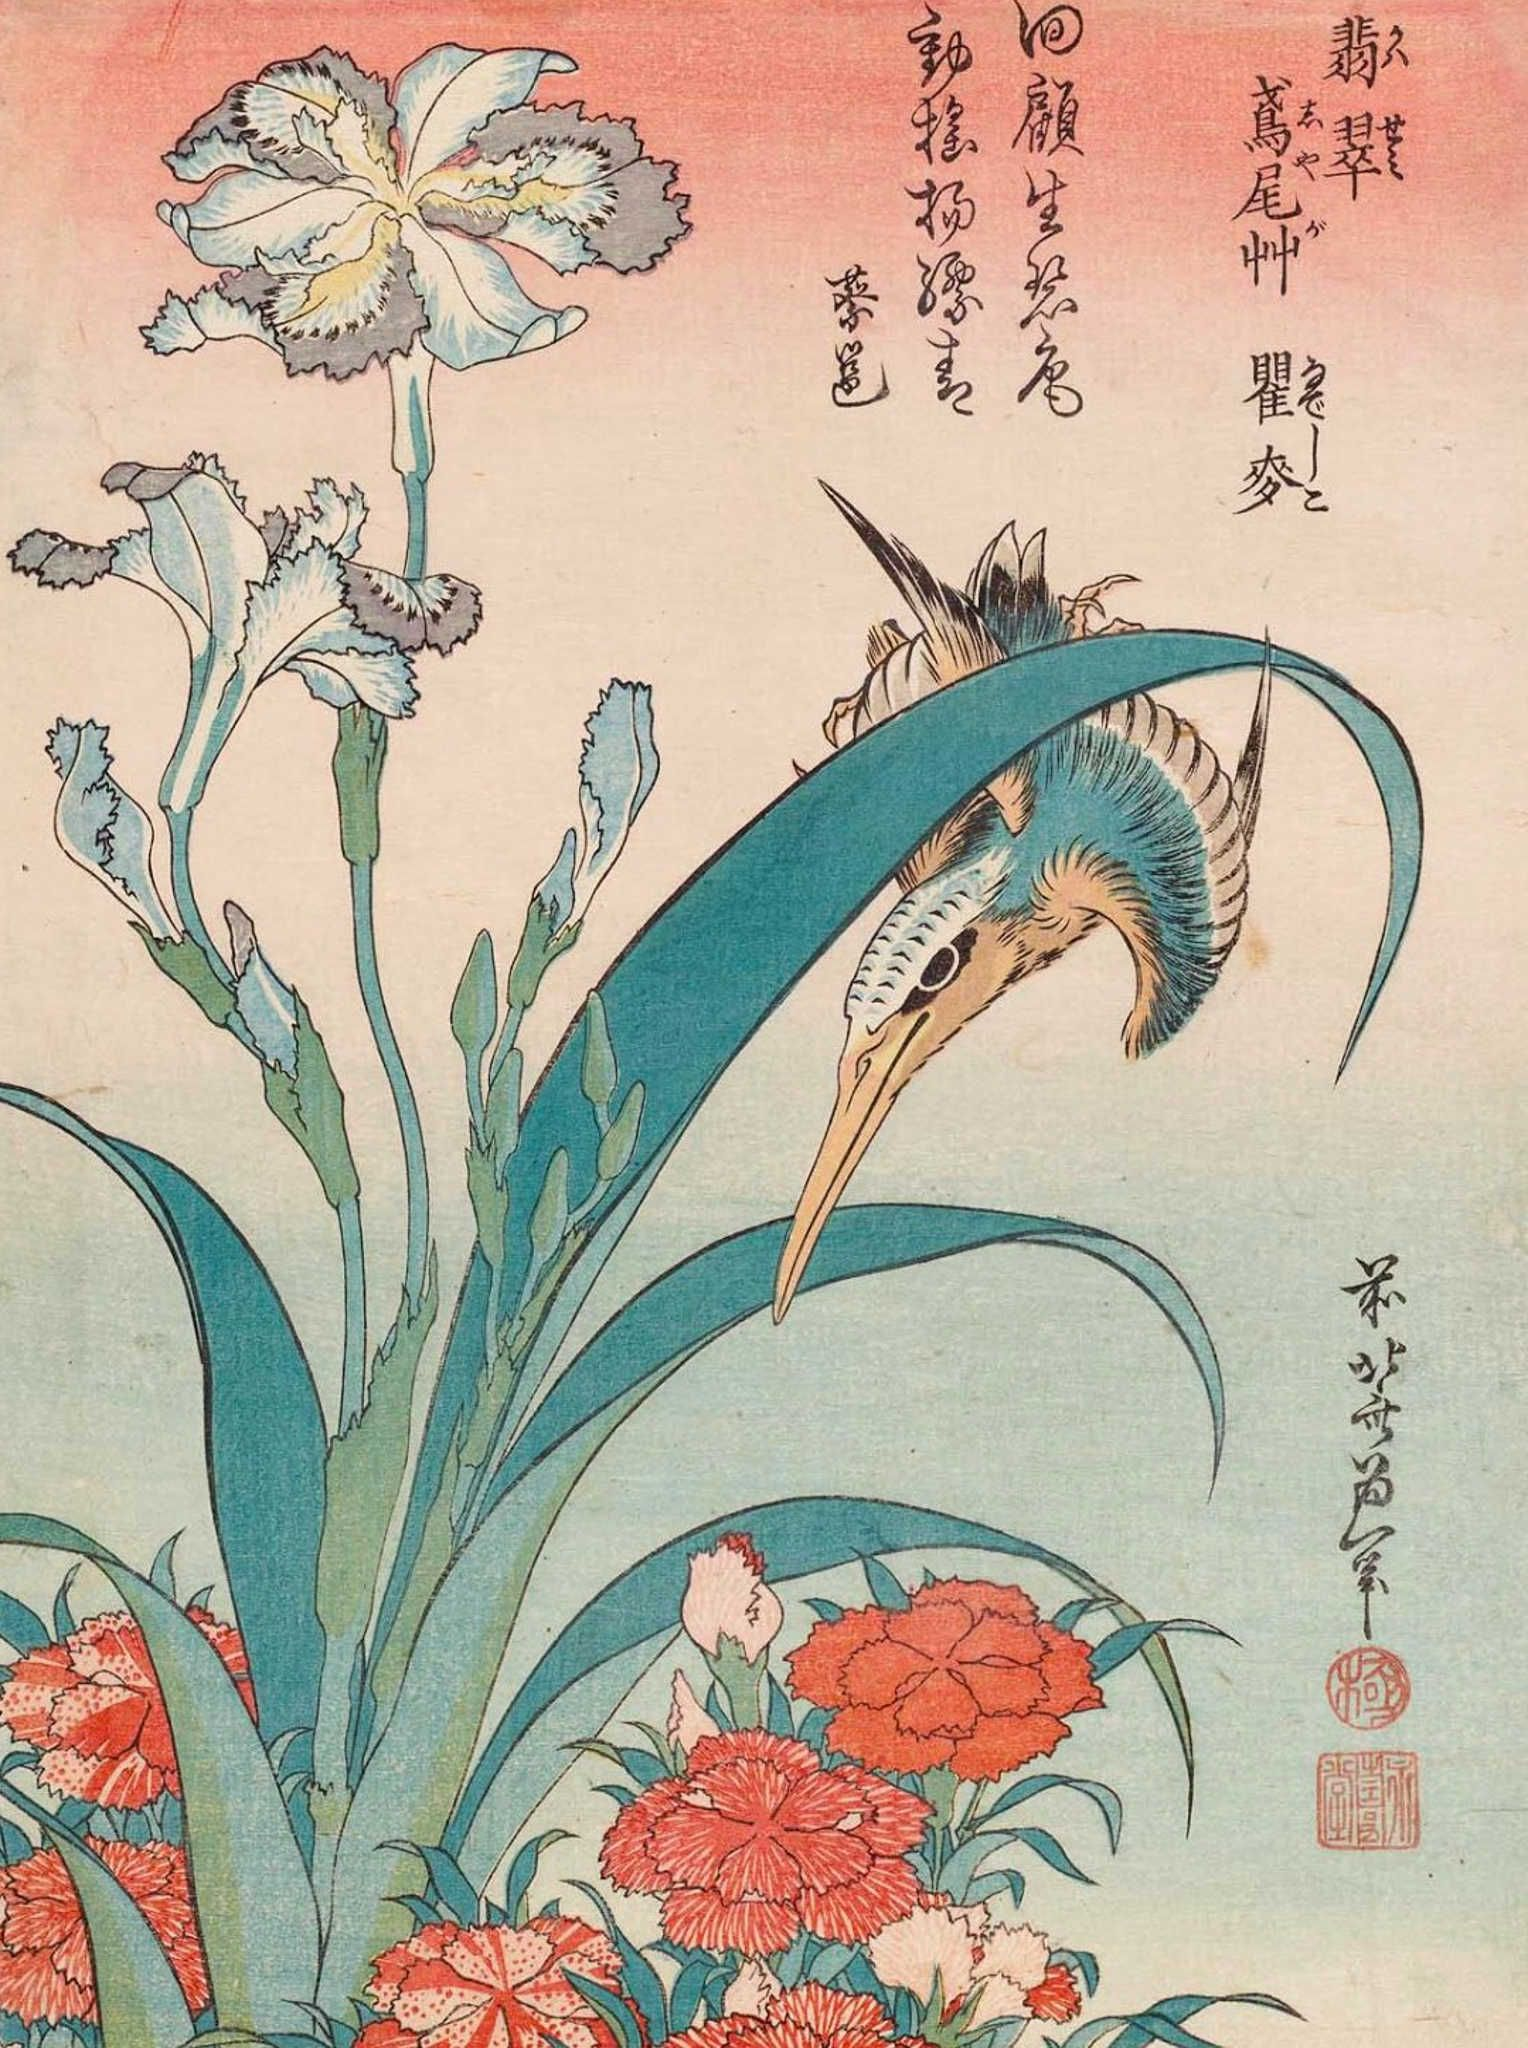 Hokusai paintings gallery discover learn print share